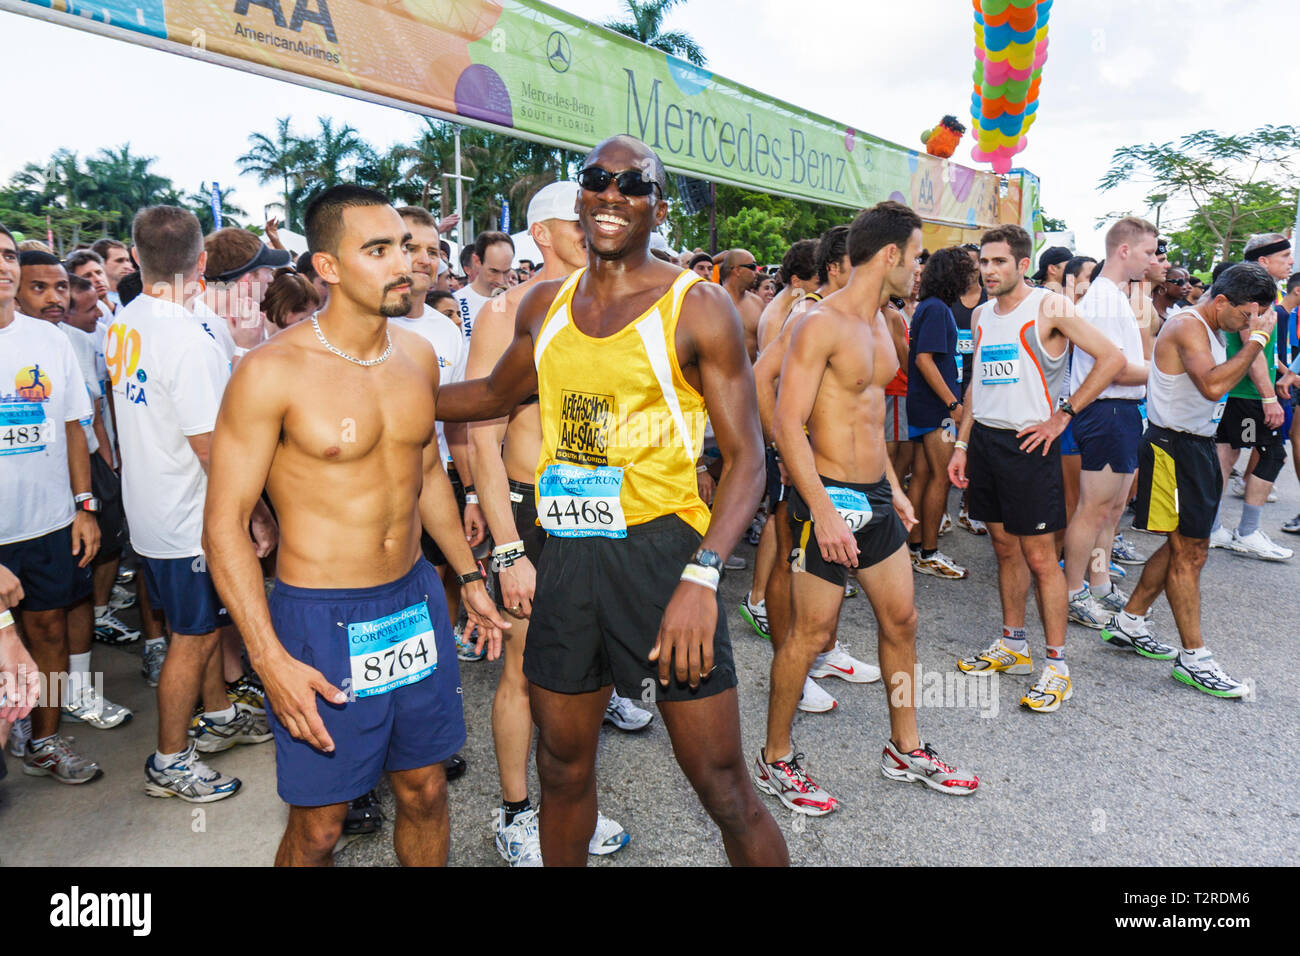 Miami Florida Bayfront Park Mercedes-Benz Miami Corporate Run race community charity event runners coworkers co-workers starting - Stock Image